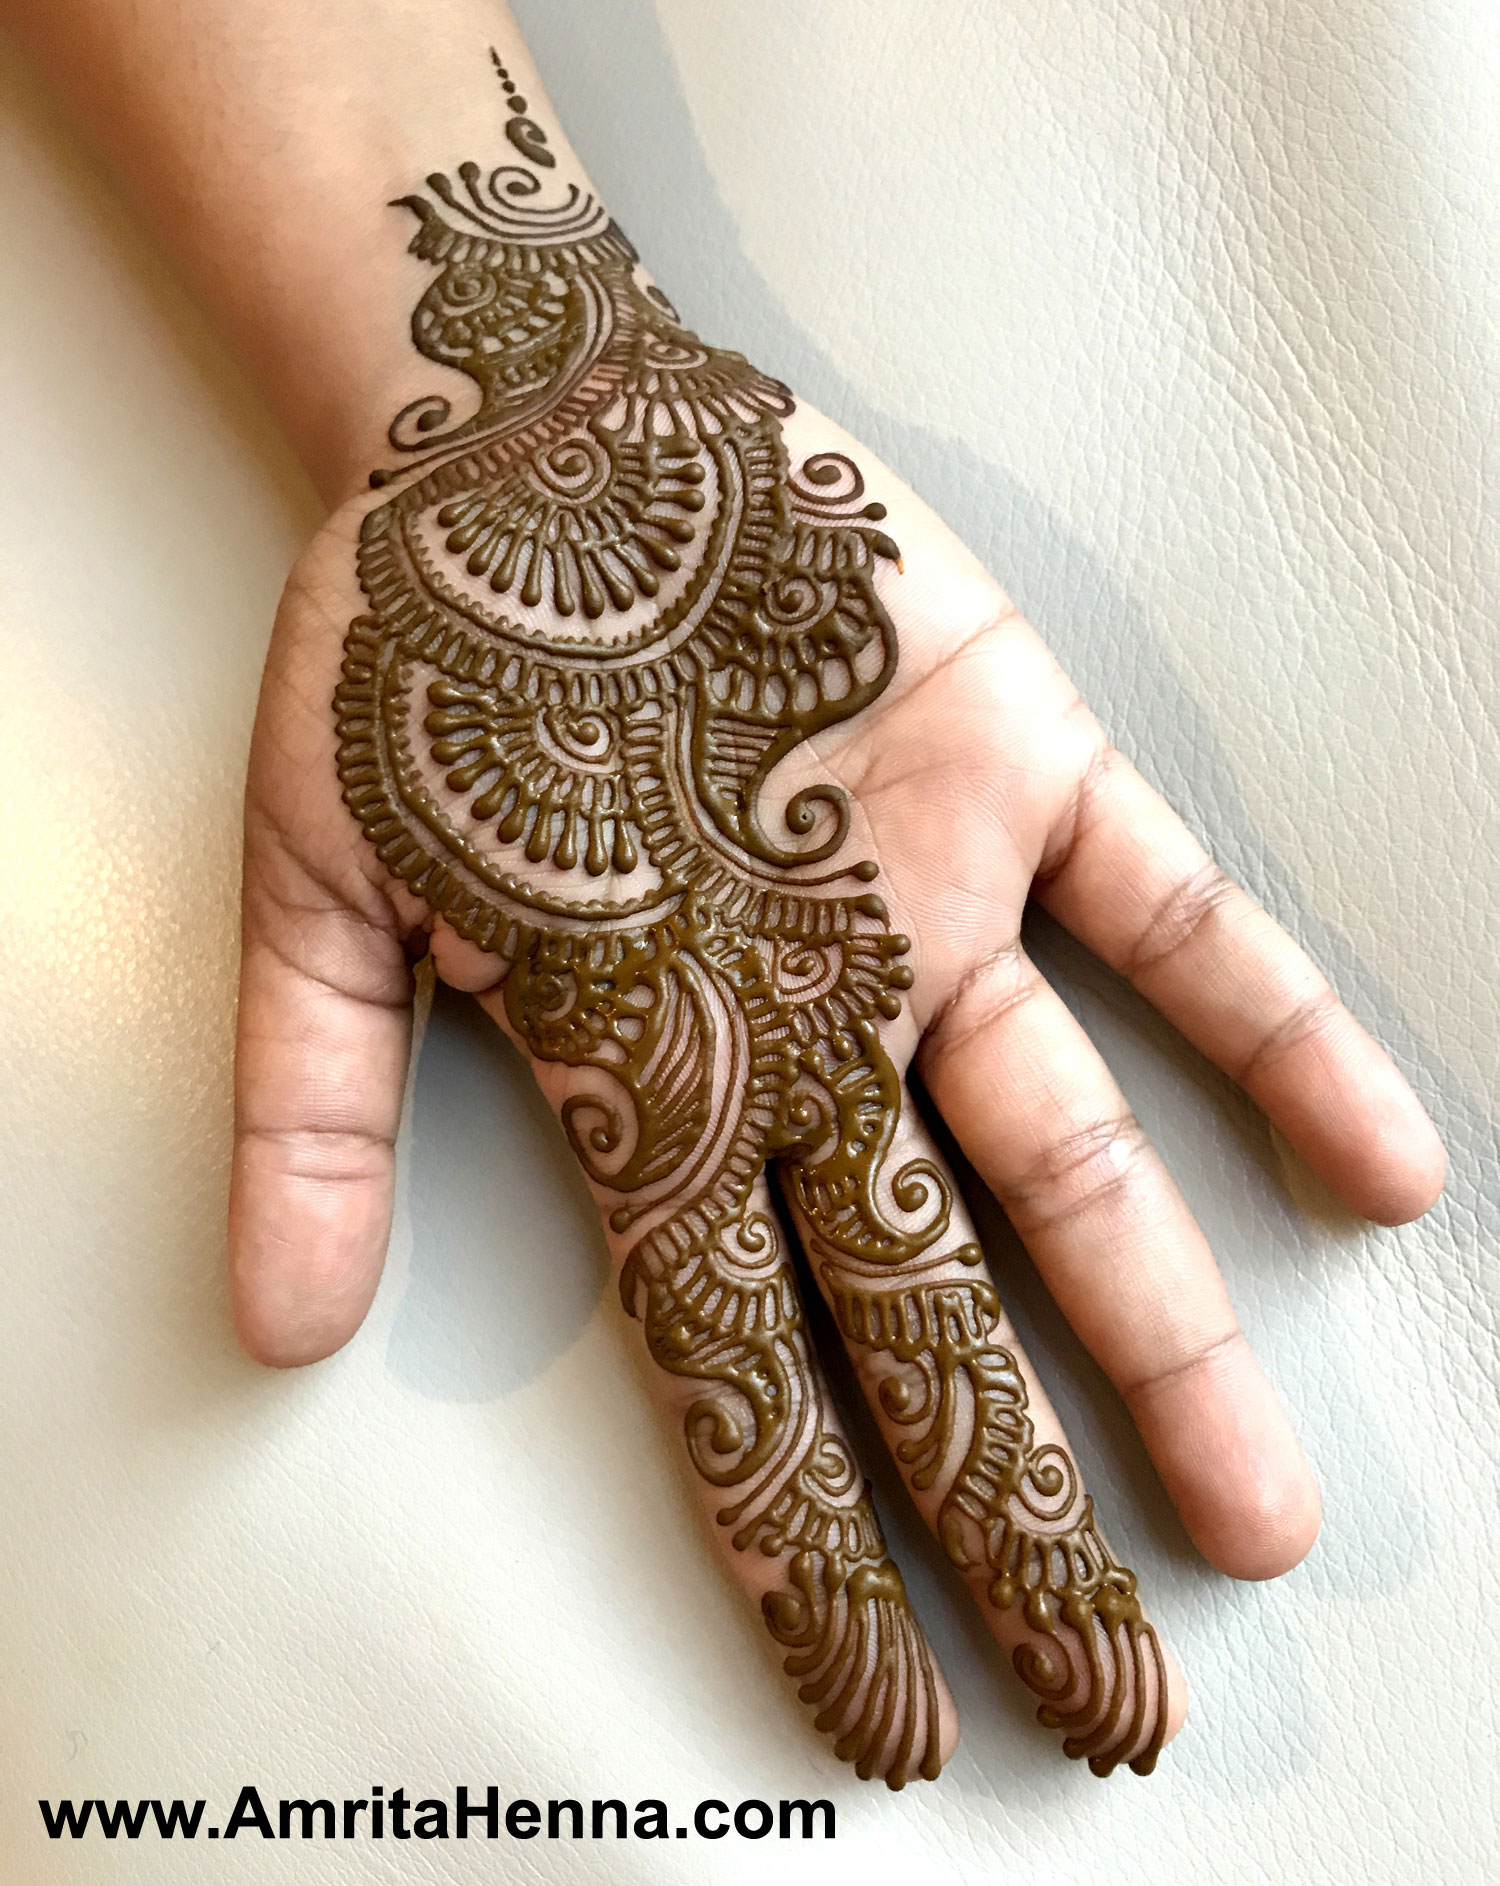 TOP 10 HENNA DESIGN IDEAS FOR INDIAN WEDDINGS - 10 AWESOME MEHENDI DESIGNS THAT ARE A MUST TRY IN YOUR FAVORITE SISTERS WEDDING - TOP 10 HENNA DESIGNS FOR YOUR SISTERS WEDDING - 10 BEST MEHNDI DESIGNS FOR YOUR SISTERS WEDDING - 10 MOST POPULAR MEHENDI DESIGNS FOR THIS WEDDING SEASON - BEST 10 HENNA MEHANDI DESIGN FOR A WEDDING PARTY - 10 STUNNING HENNA DESIGNS WHEN YOUR SISTER GETS MARRIED - TOP 10 HENNA DESIGNS FOR YOUR SISTERS HENNA CEREMONY - 10 BEAUTIFUL MEHNDI DESIGNS FOR A HENNA PARTY - SISTERS WEDDING HENNA DESIGN IDEAS - TOP 10 INDIAN WEDDING IDEAS - 10 BEST HENNA PARTY IDEAS - 10 AMAZING HENNA DESIGNS FOR YOUR SISTERS WEDDING